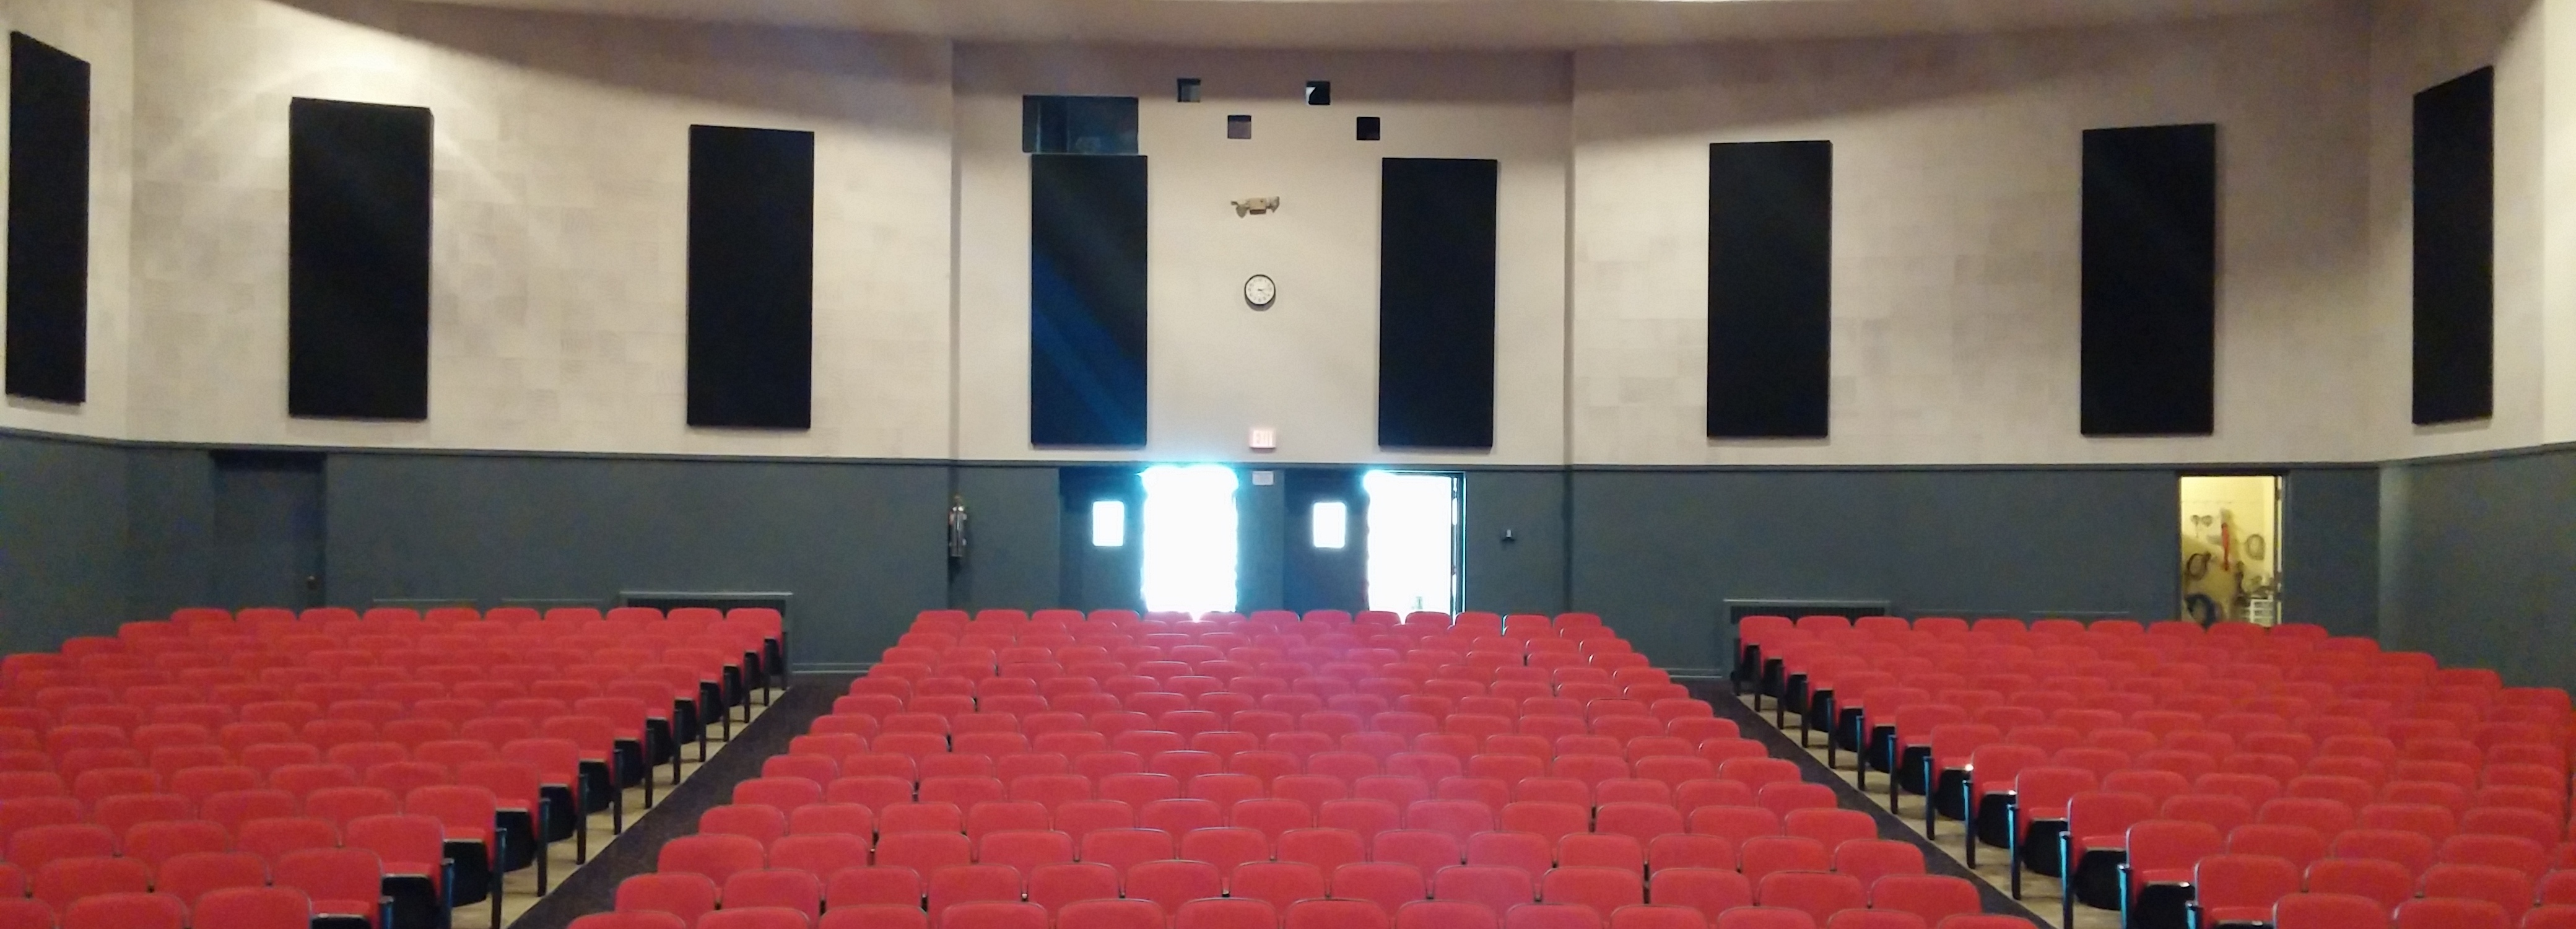 Perkins-Theater-Acoustical